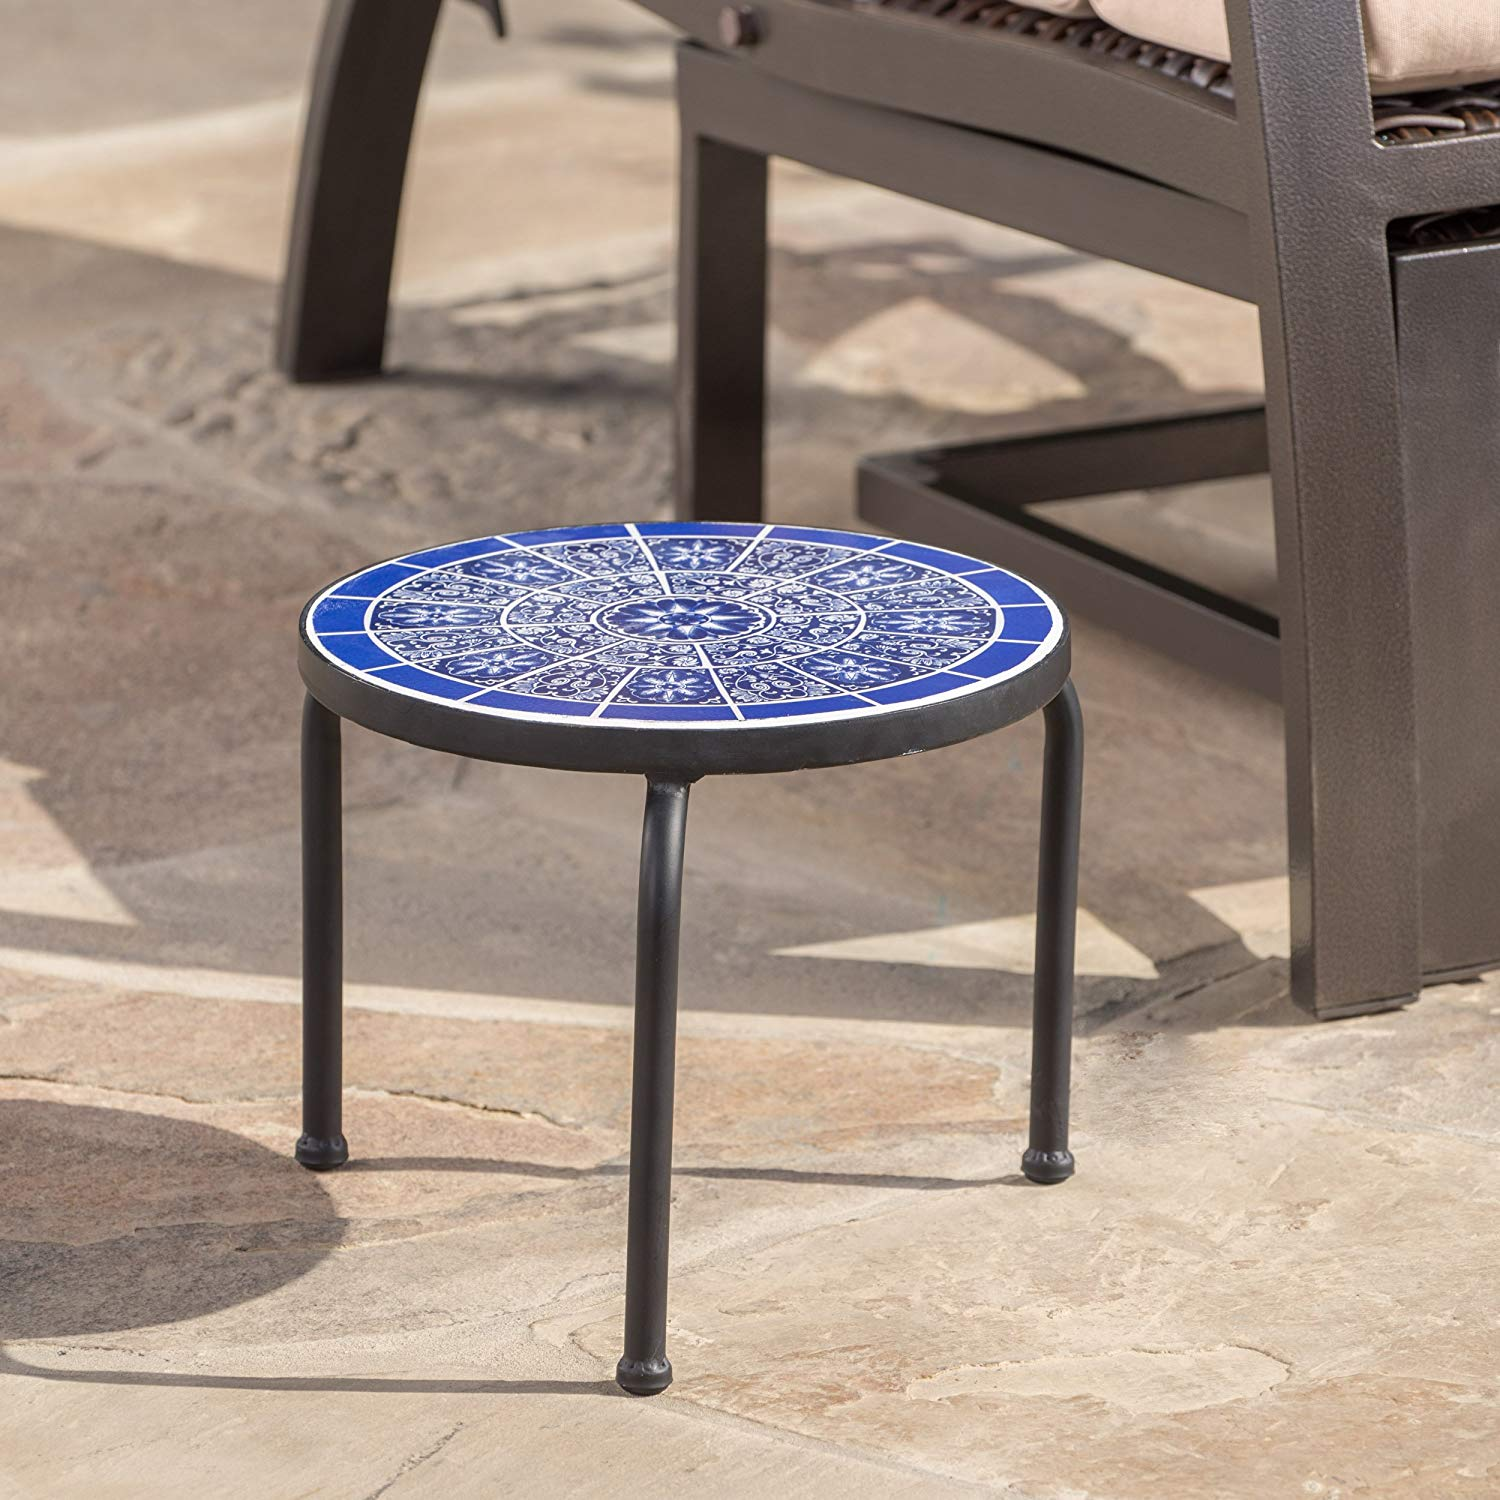 soleil outdoor blue white ceramic iron frame tile accent table side garden hairpin clearance bedding unfinished dining gallerie beds narrow sofa end antique bench burgundy runner